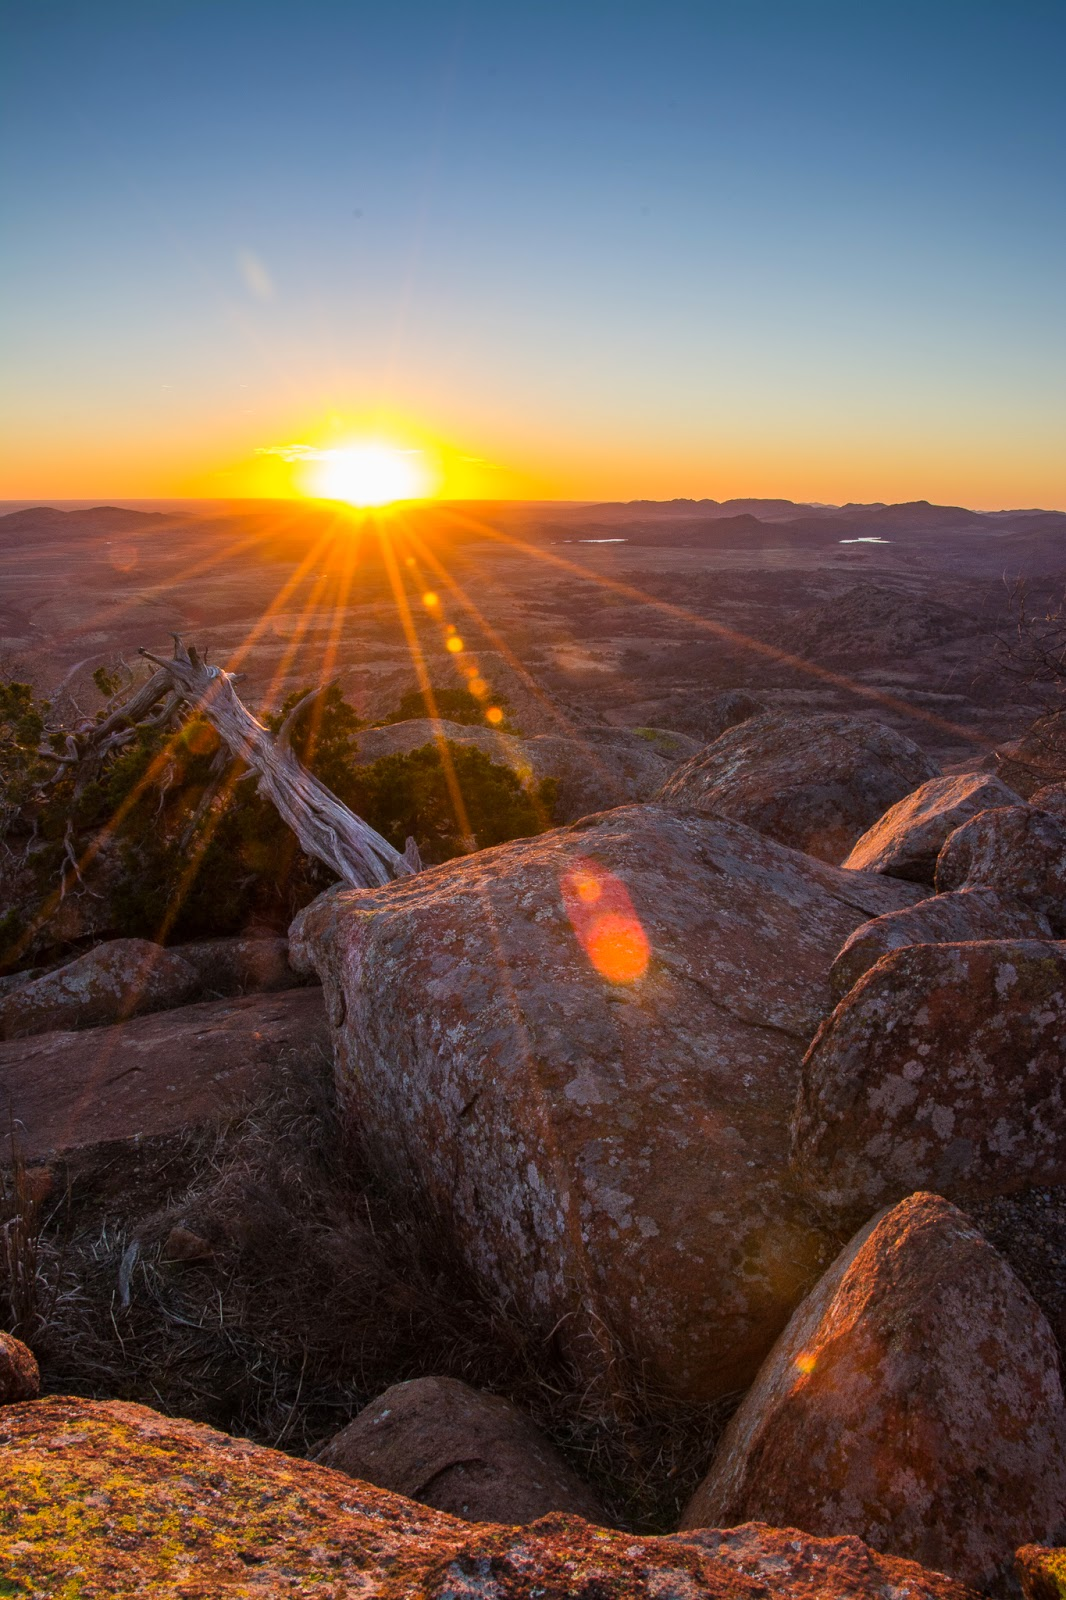 Mt. Scott Sunset, Wichita Mountains Wildlife Refuge